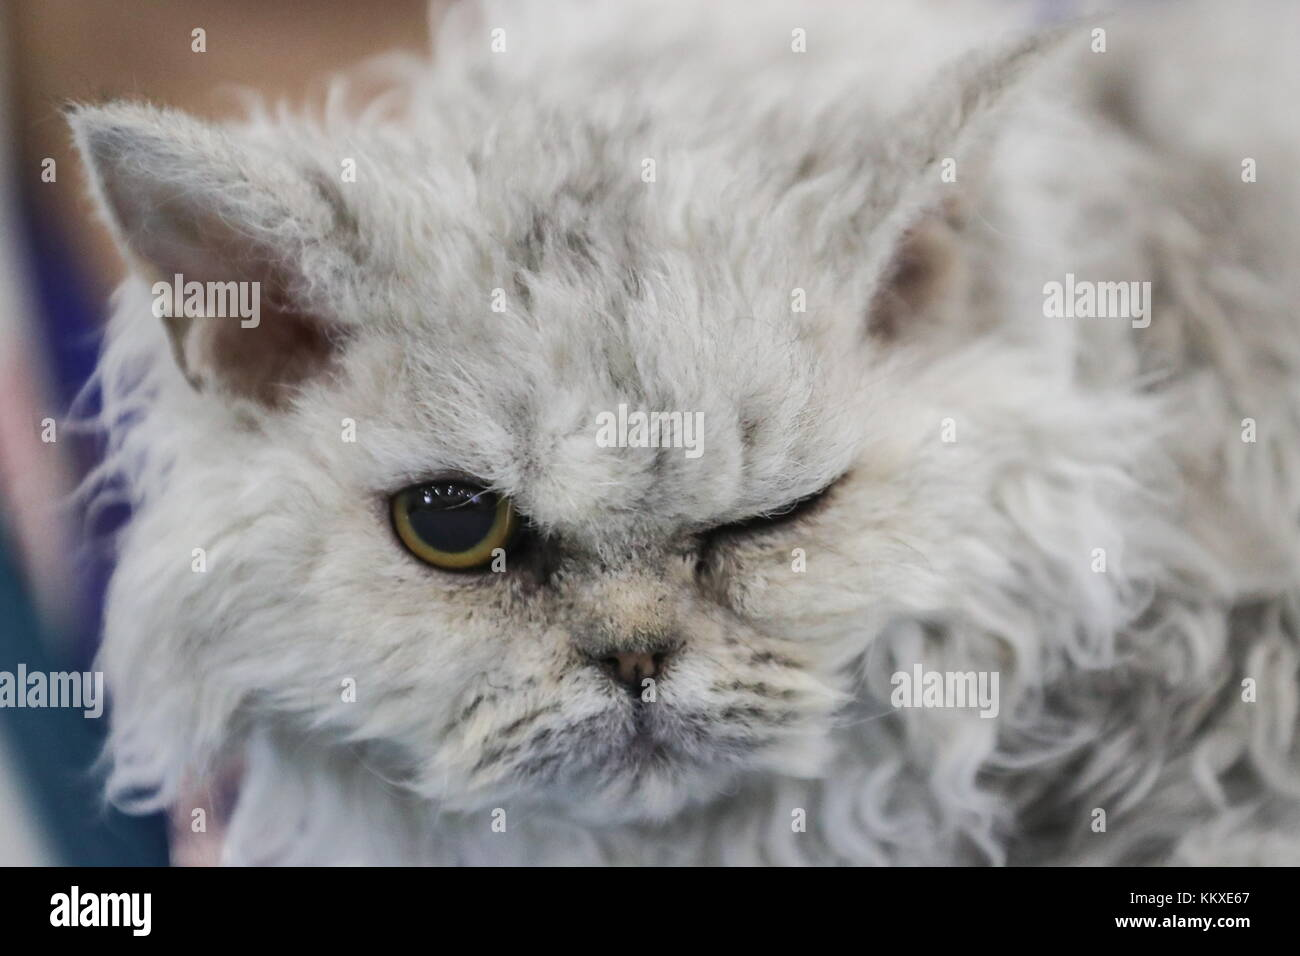 Moscow Region, Russia. 2nd Dec, 2017. A cat at the 2017 Grand Prix Royal Canin international cat show at the Crocus - Stock Image